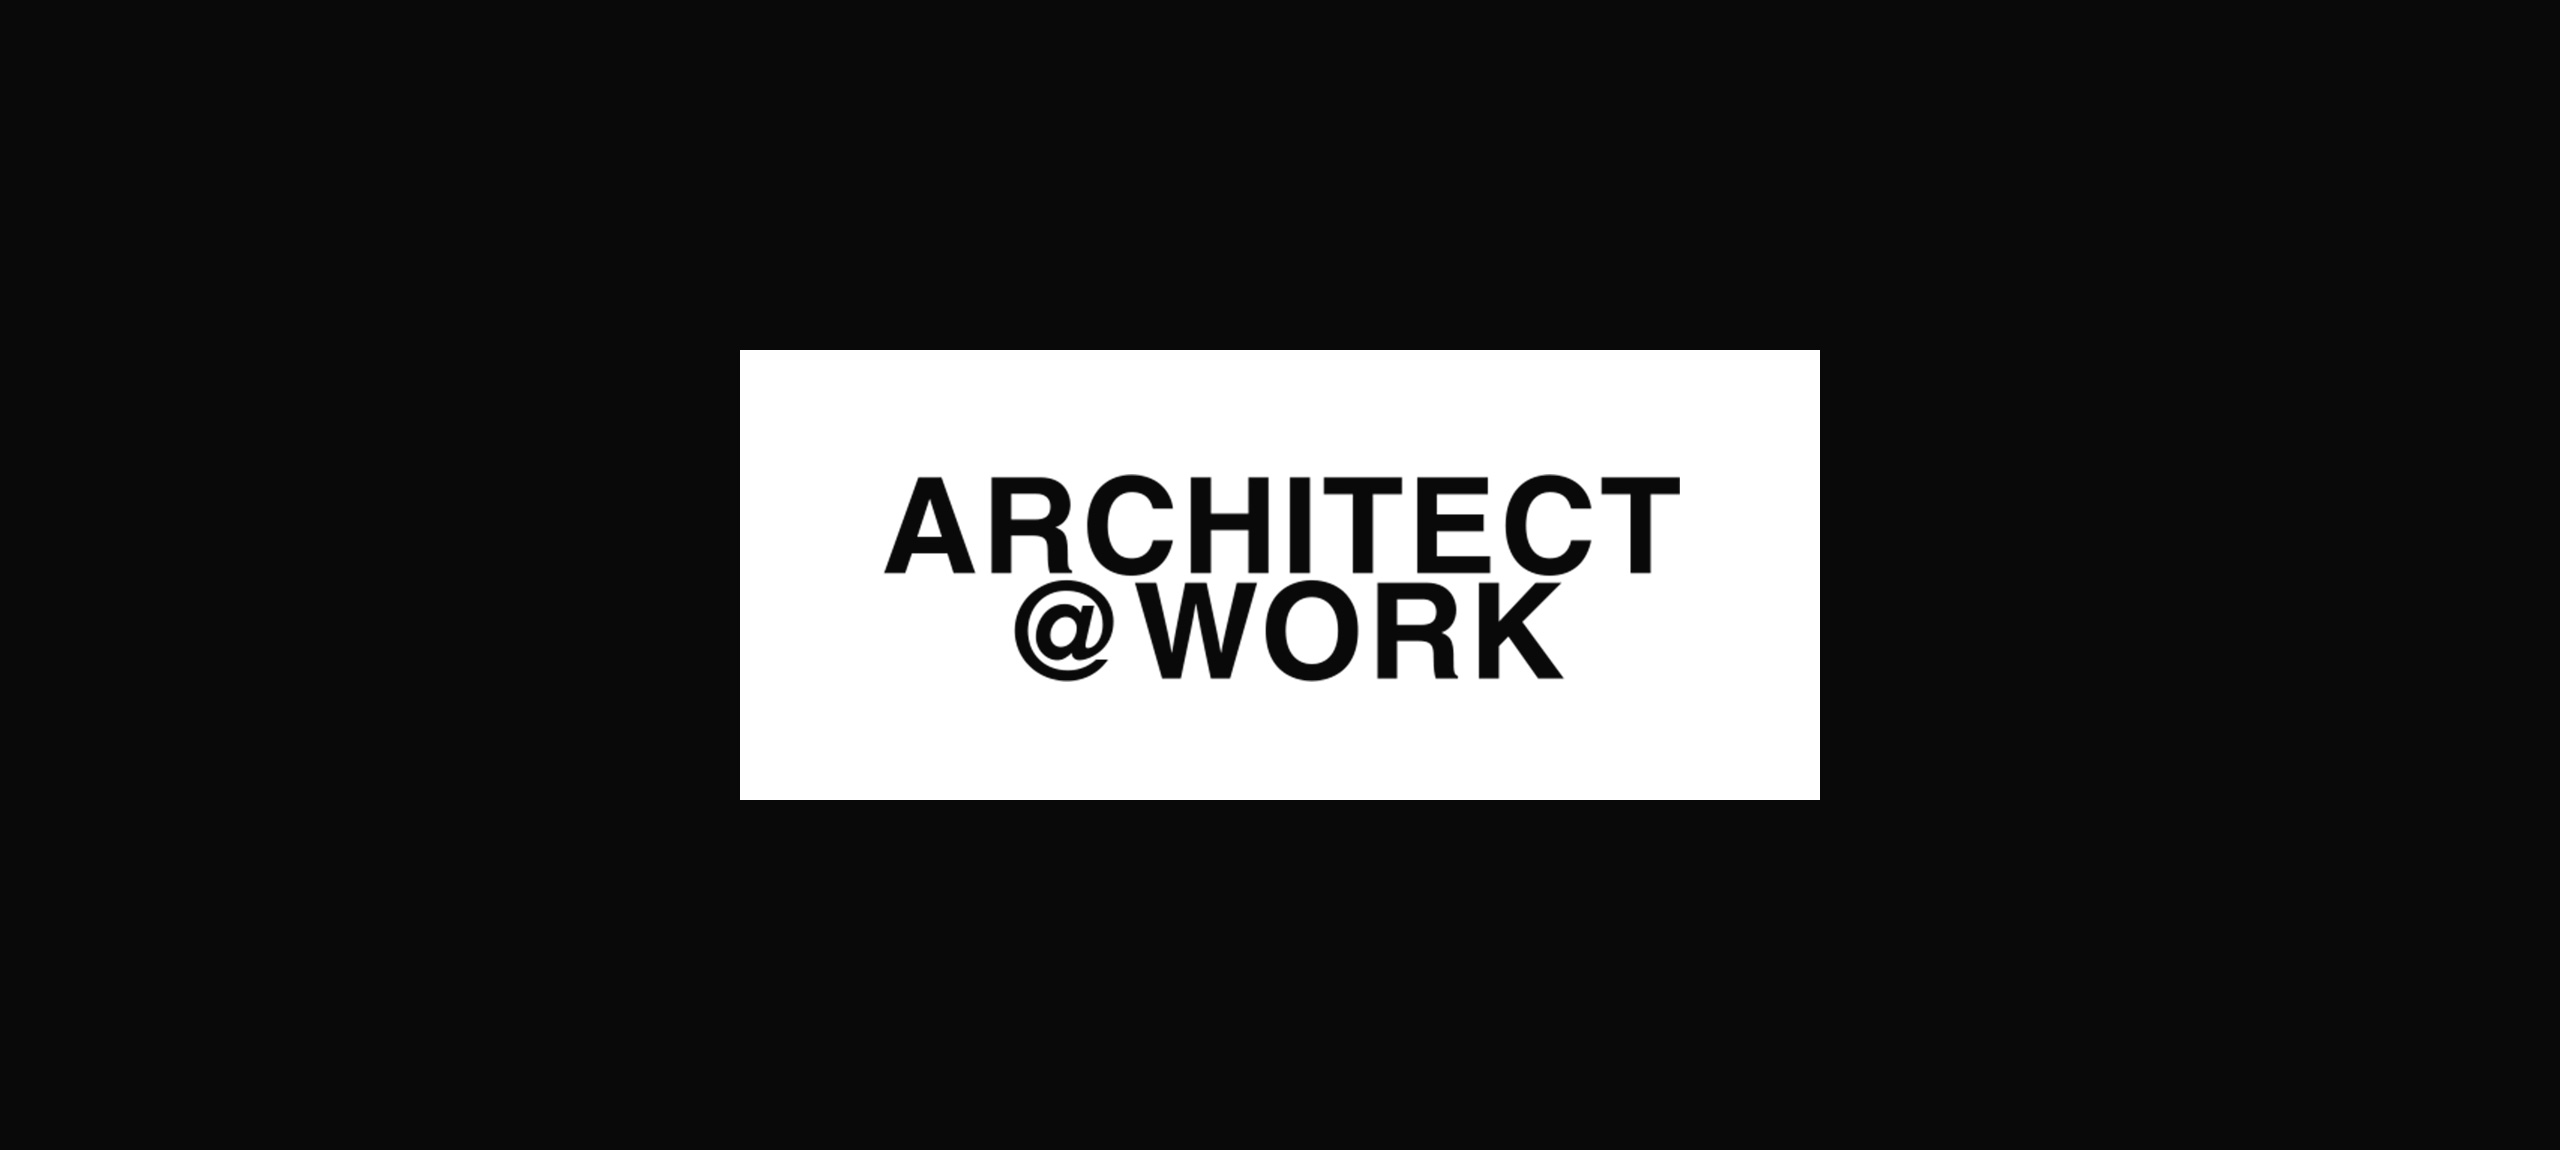 fullscreen_architect@work